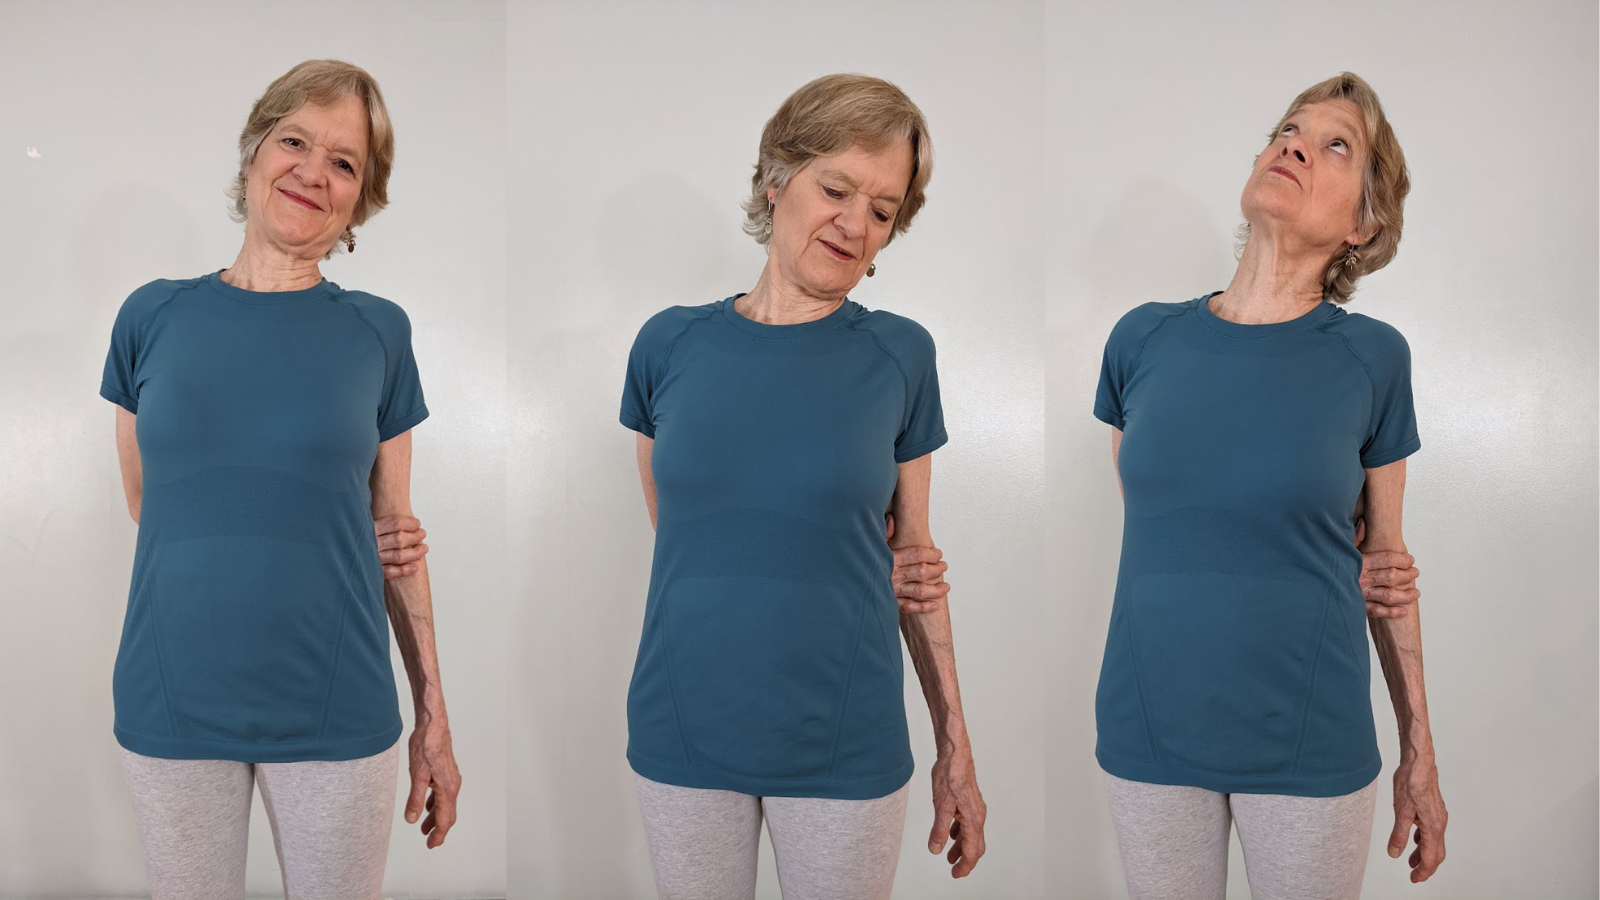 Shoulder exercise to release negative holding and movement problems